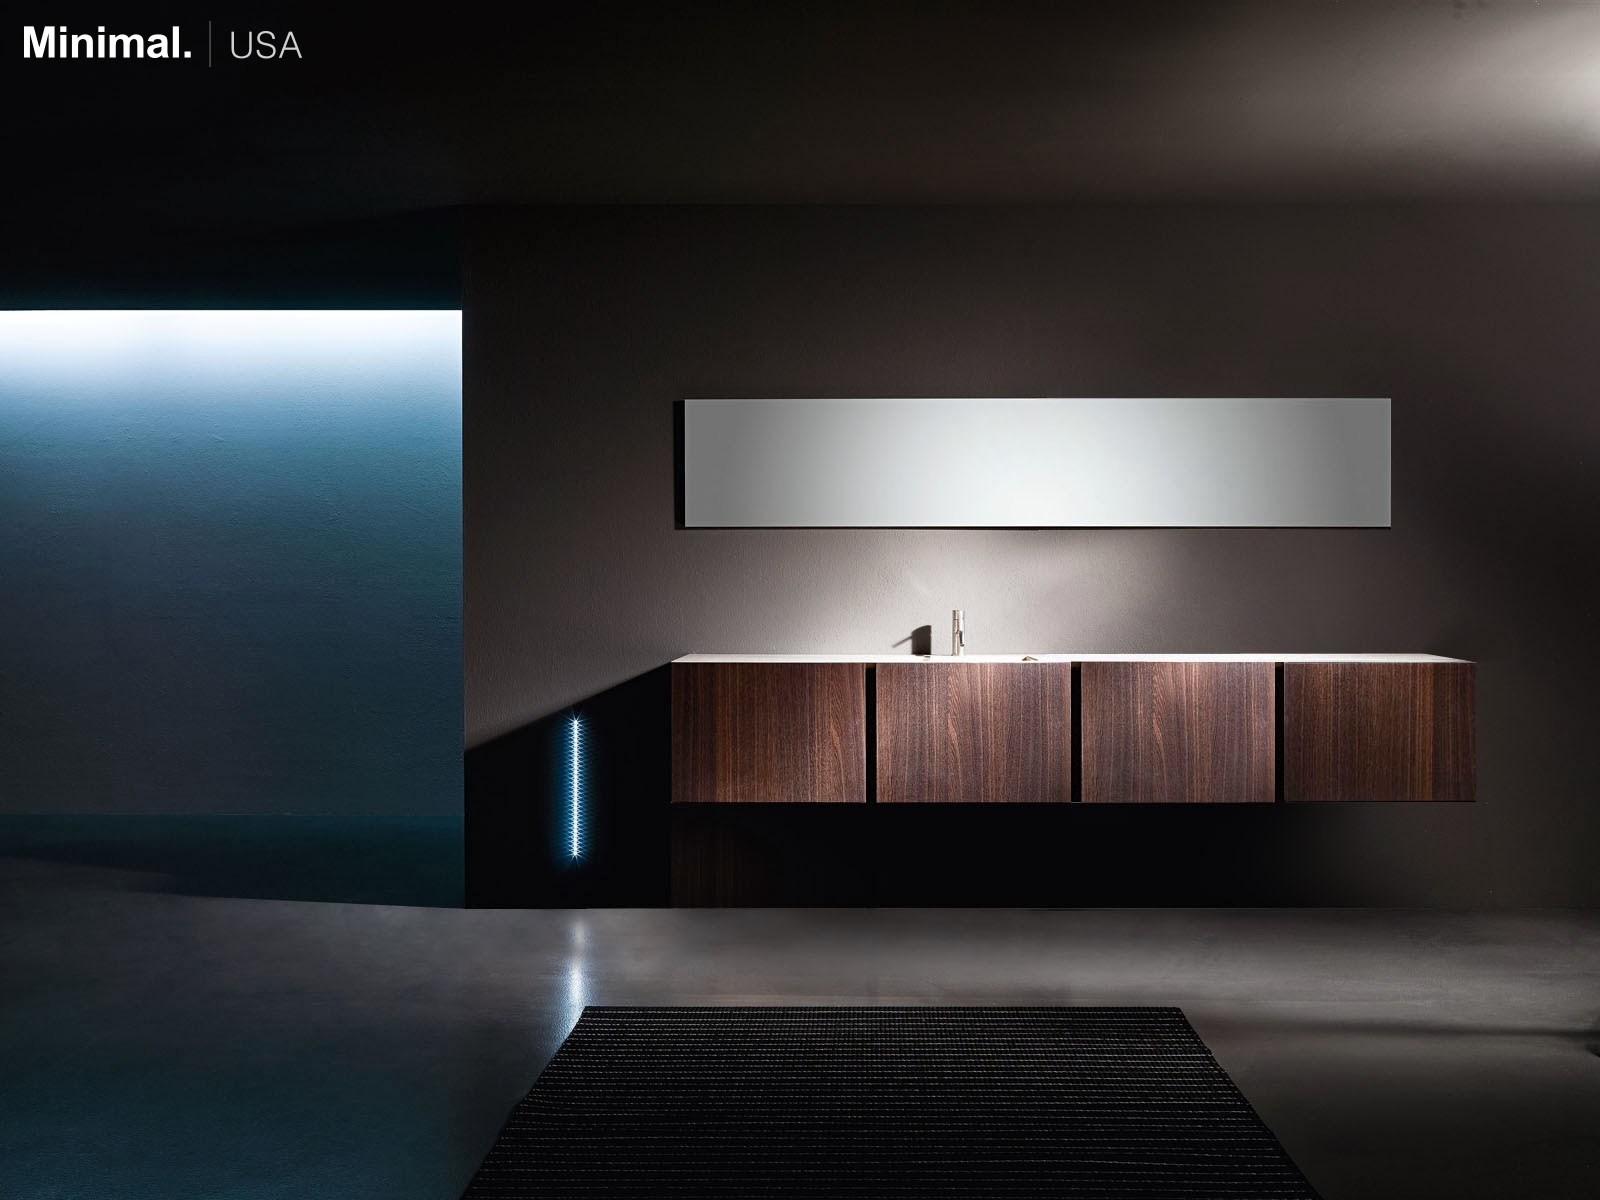 Minimal USA Contemporary Bespoke UNITS Bathroom